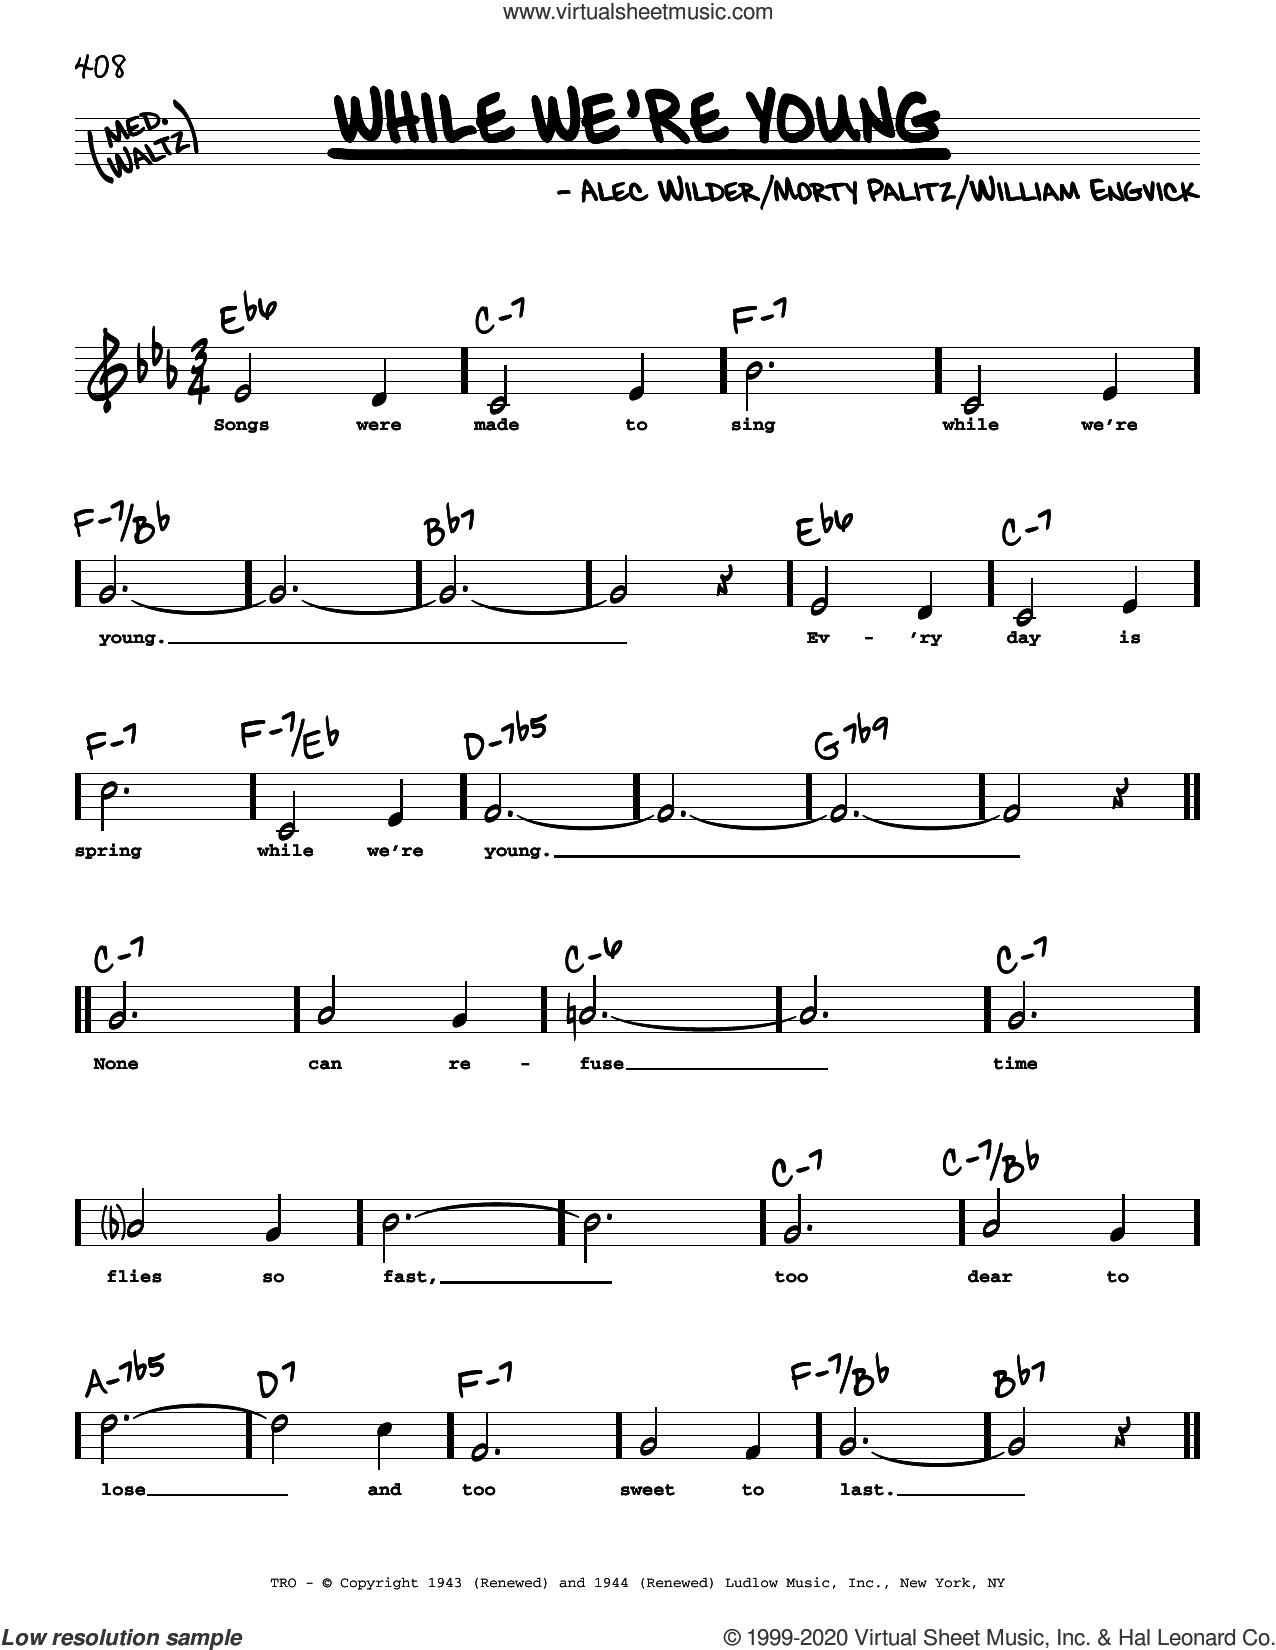 While We're Young (High Voice) sheet music for voice and other instruments (high voice) by William Engvick, Alec Wilder and Morty Palitz, intermediate skill level